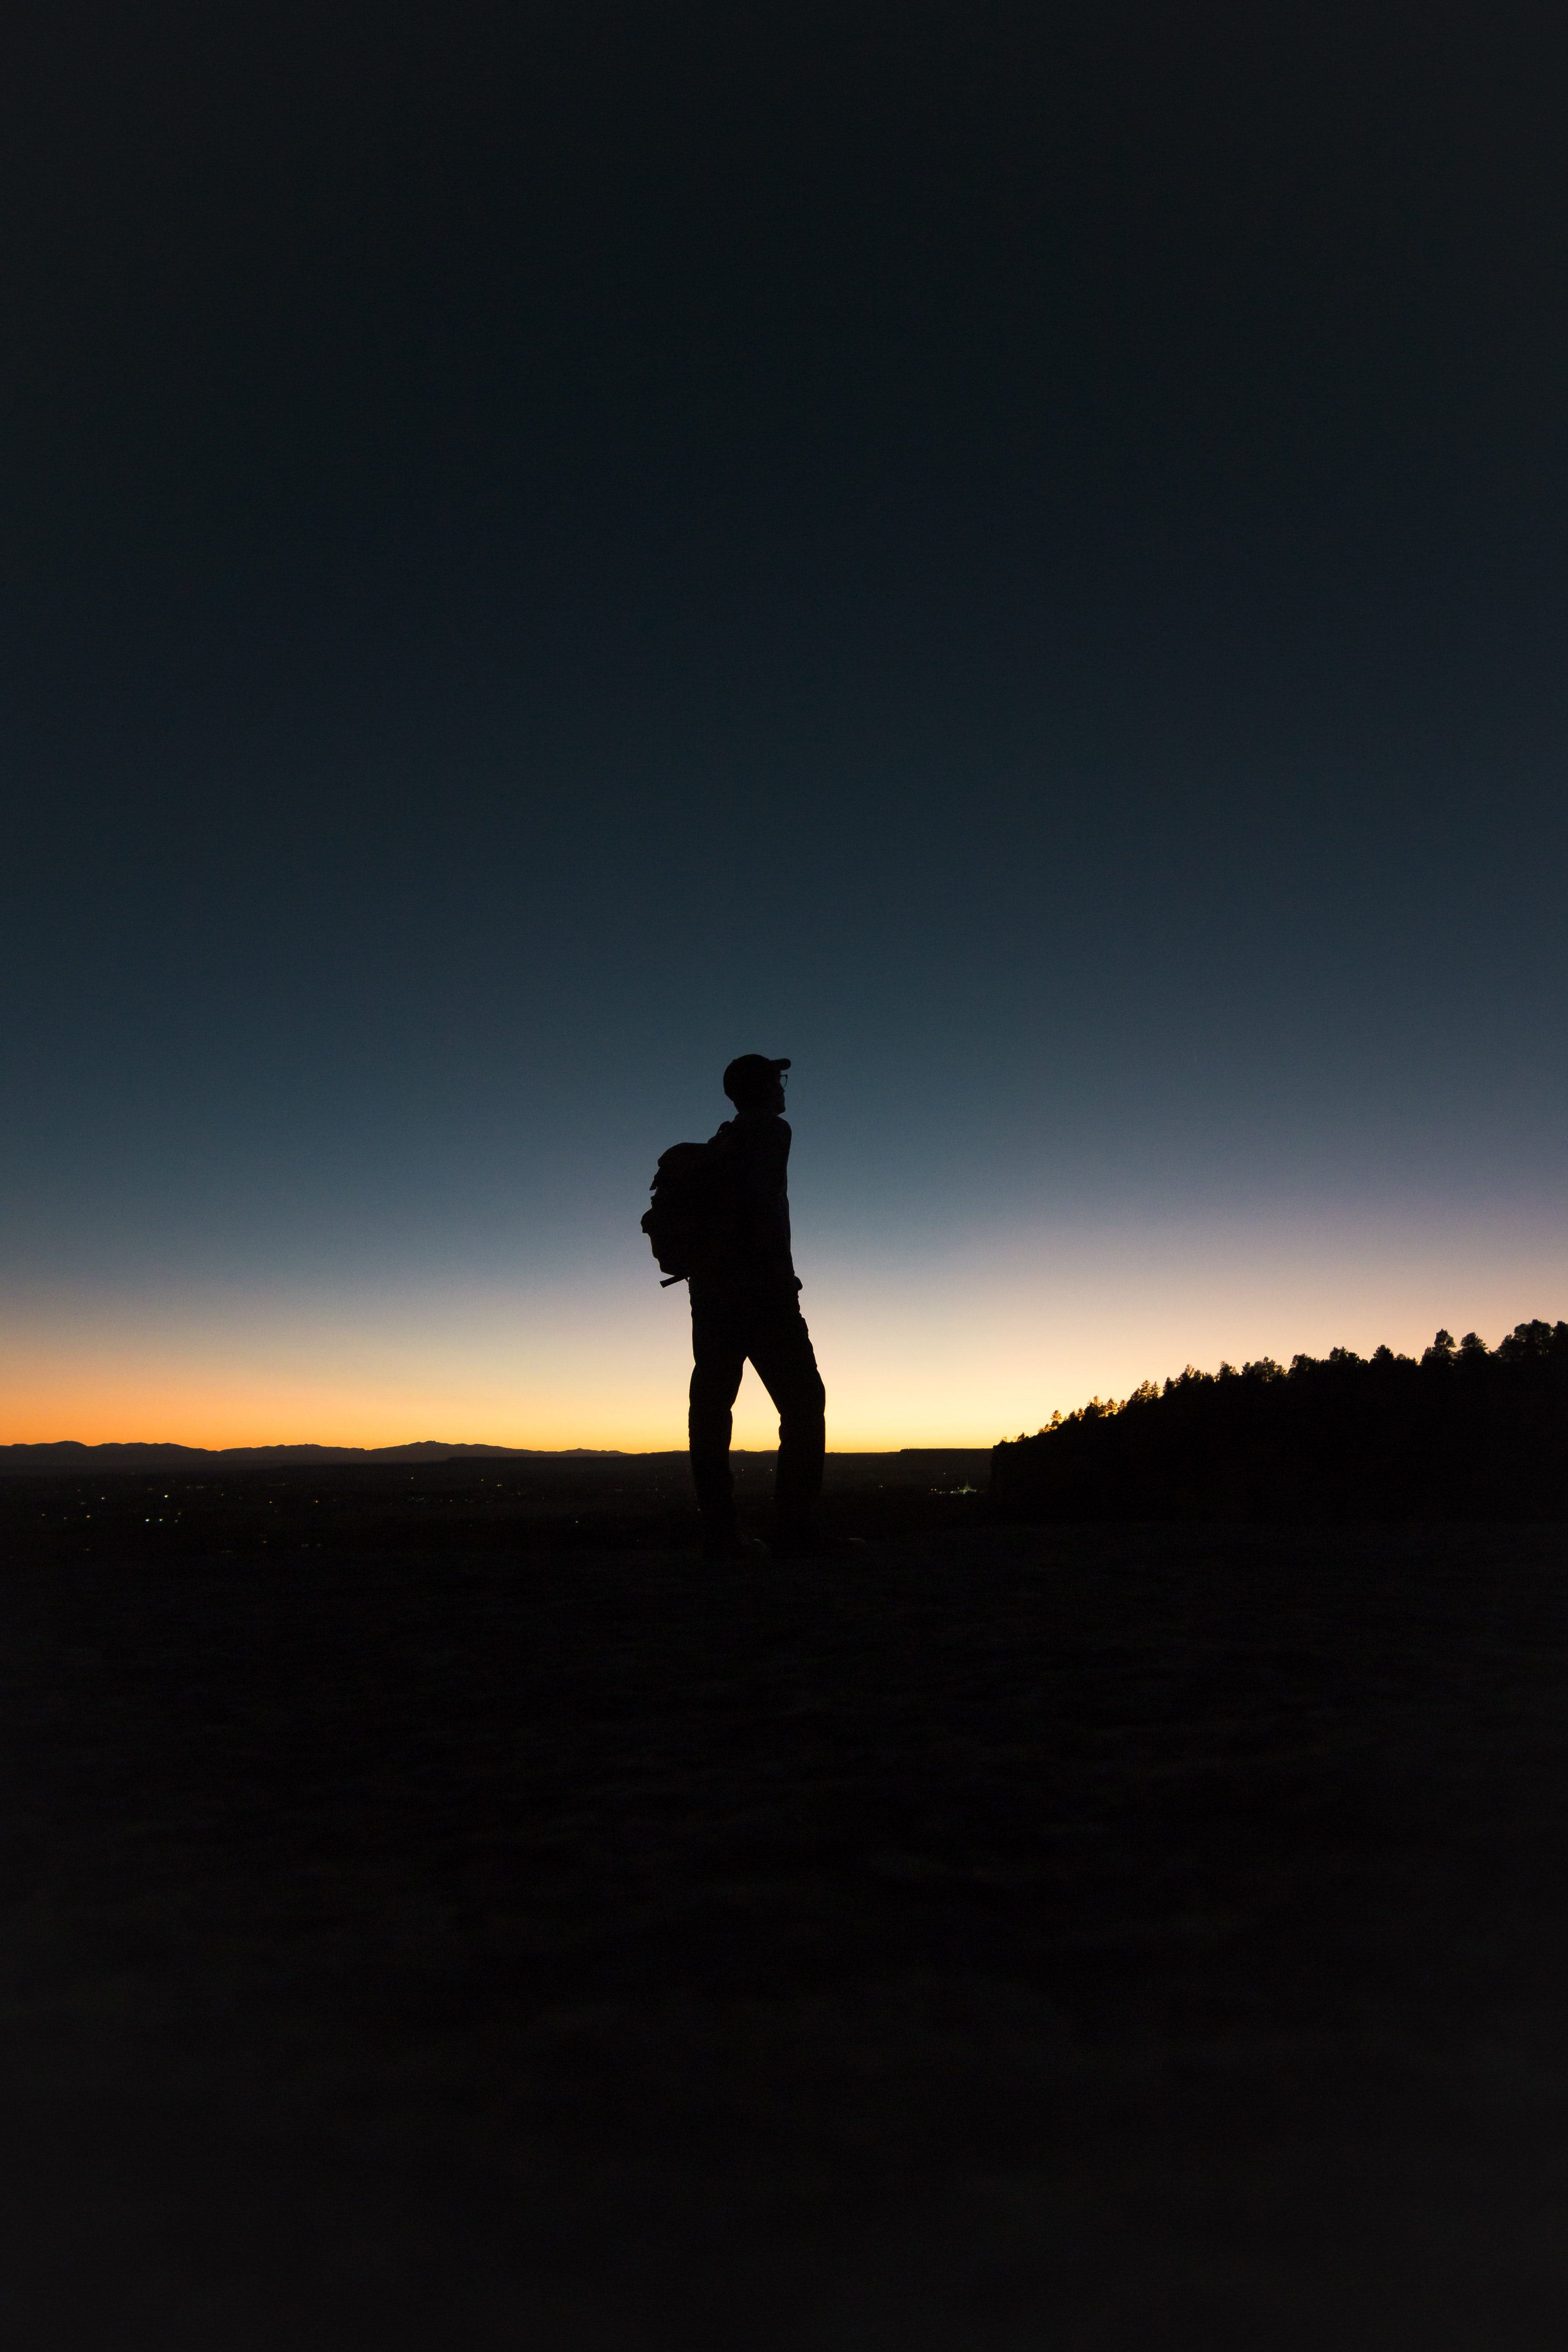 man with backpack in silhouette